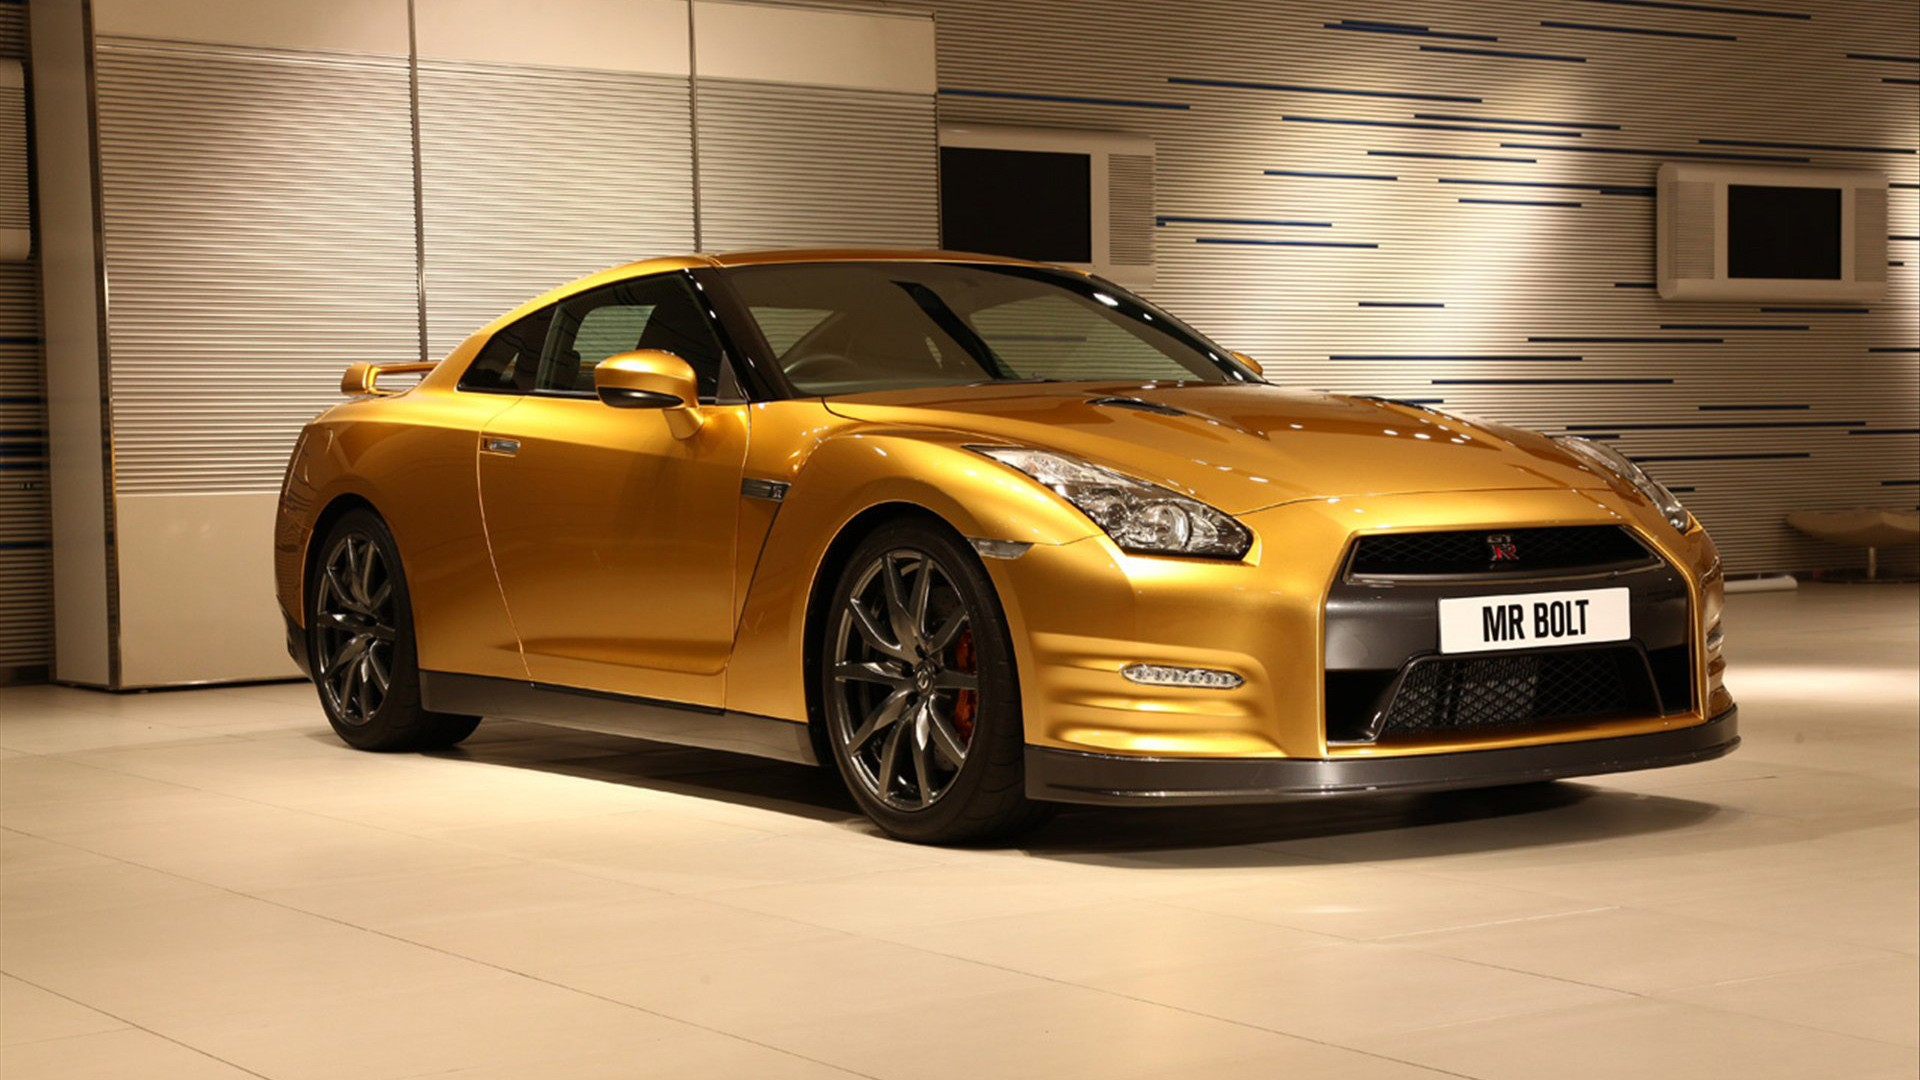 Gold Car Wallpapers: Nissan GT R Gold Wallpaper